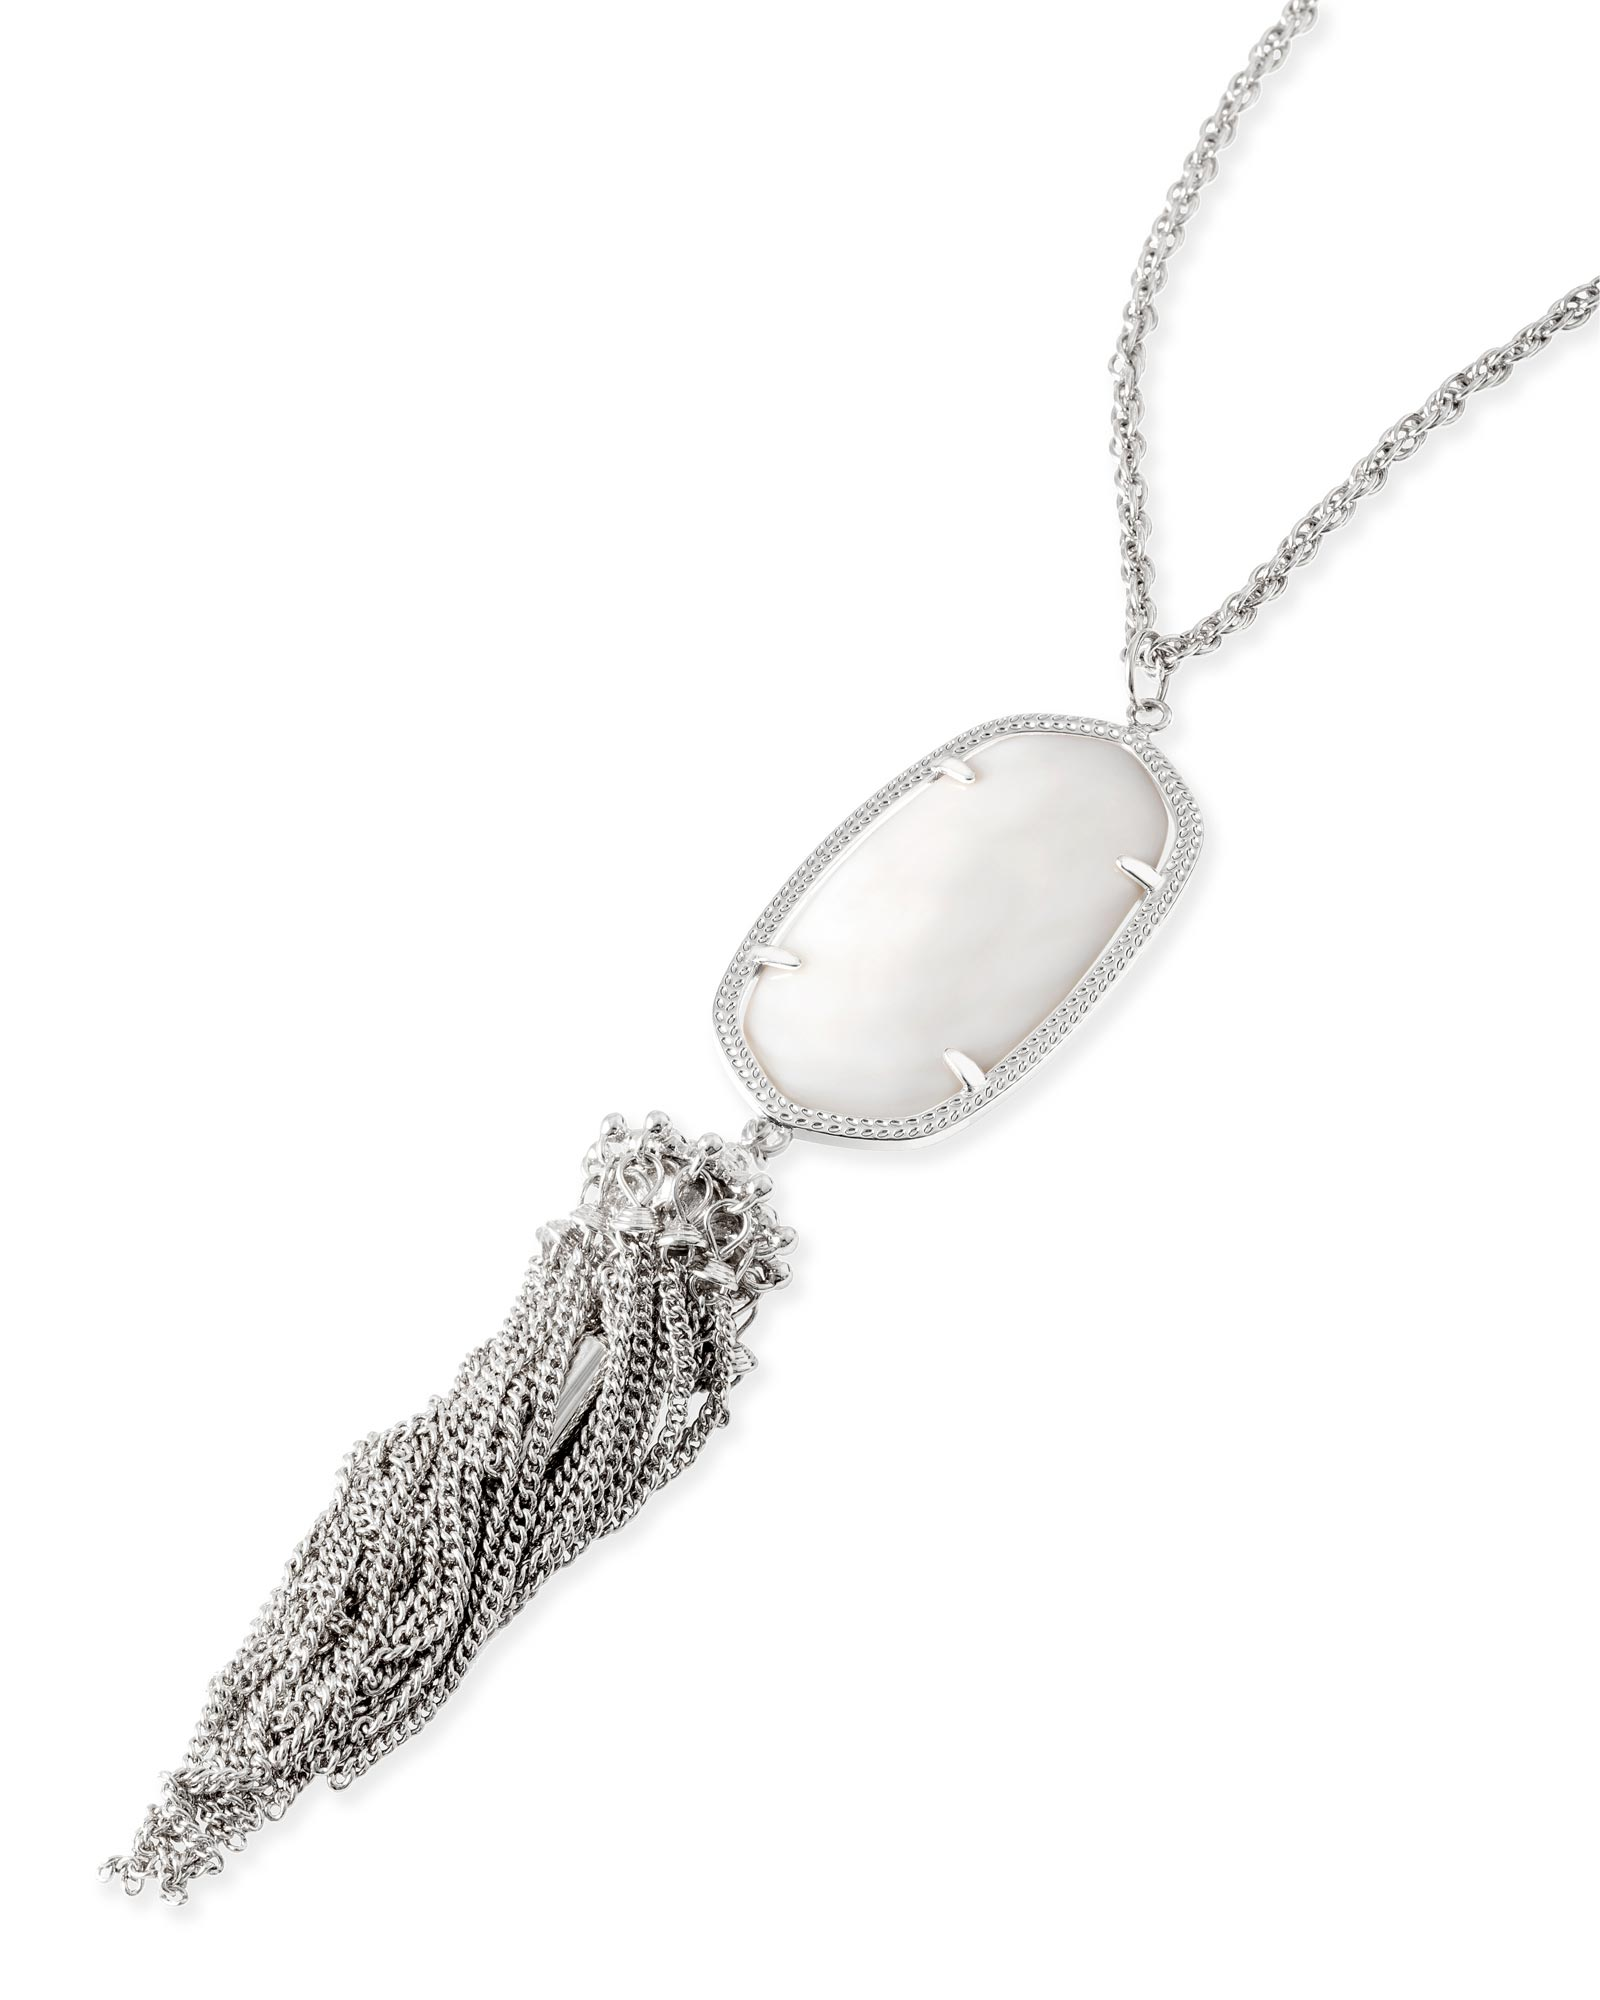 Rayne Silver Necklace in White Pearl